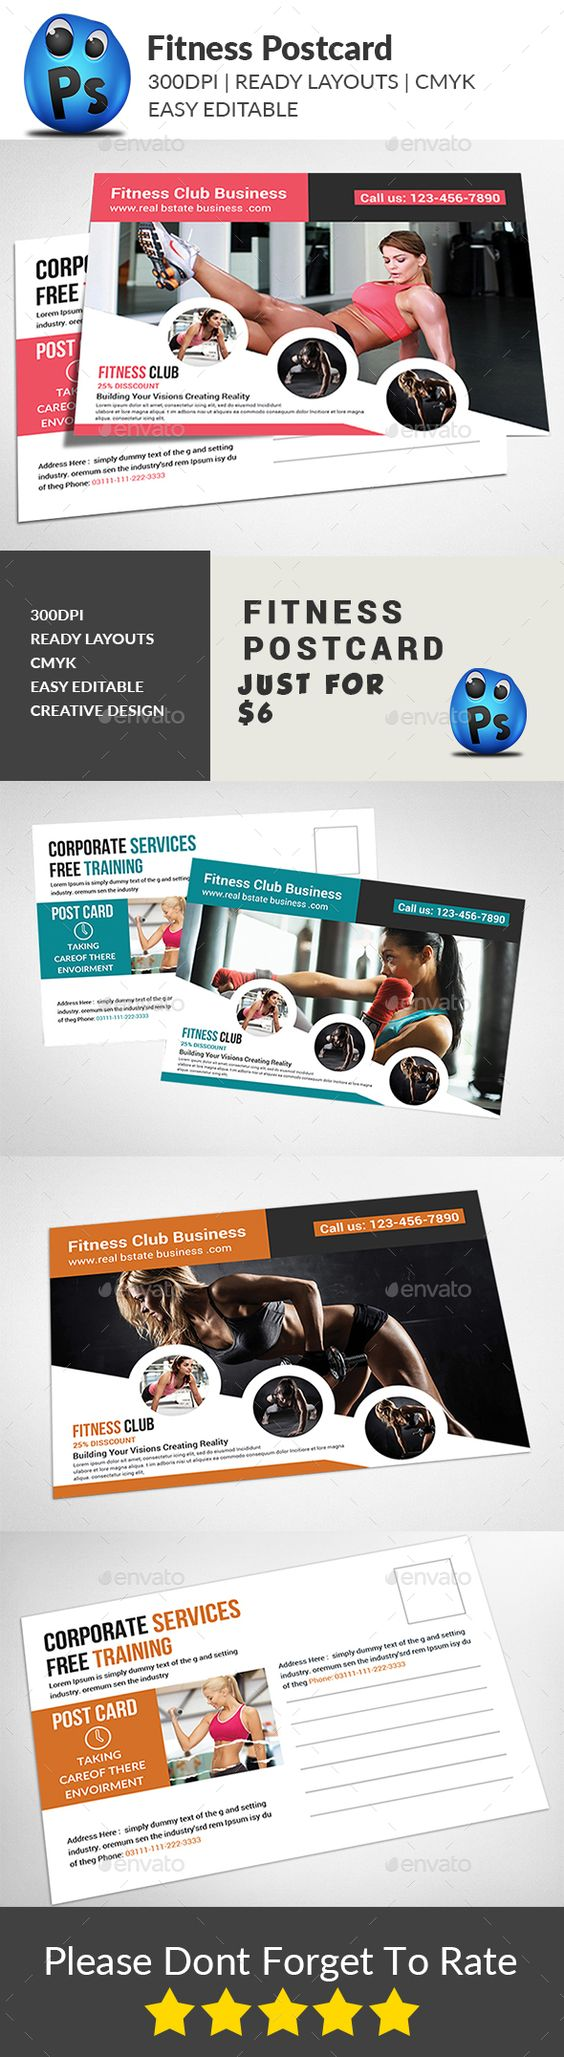 fitness postcard postcards postcard template and fitness fitness postcard psd template advertising pamphlet ➝